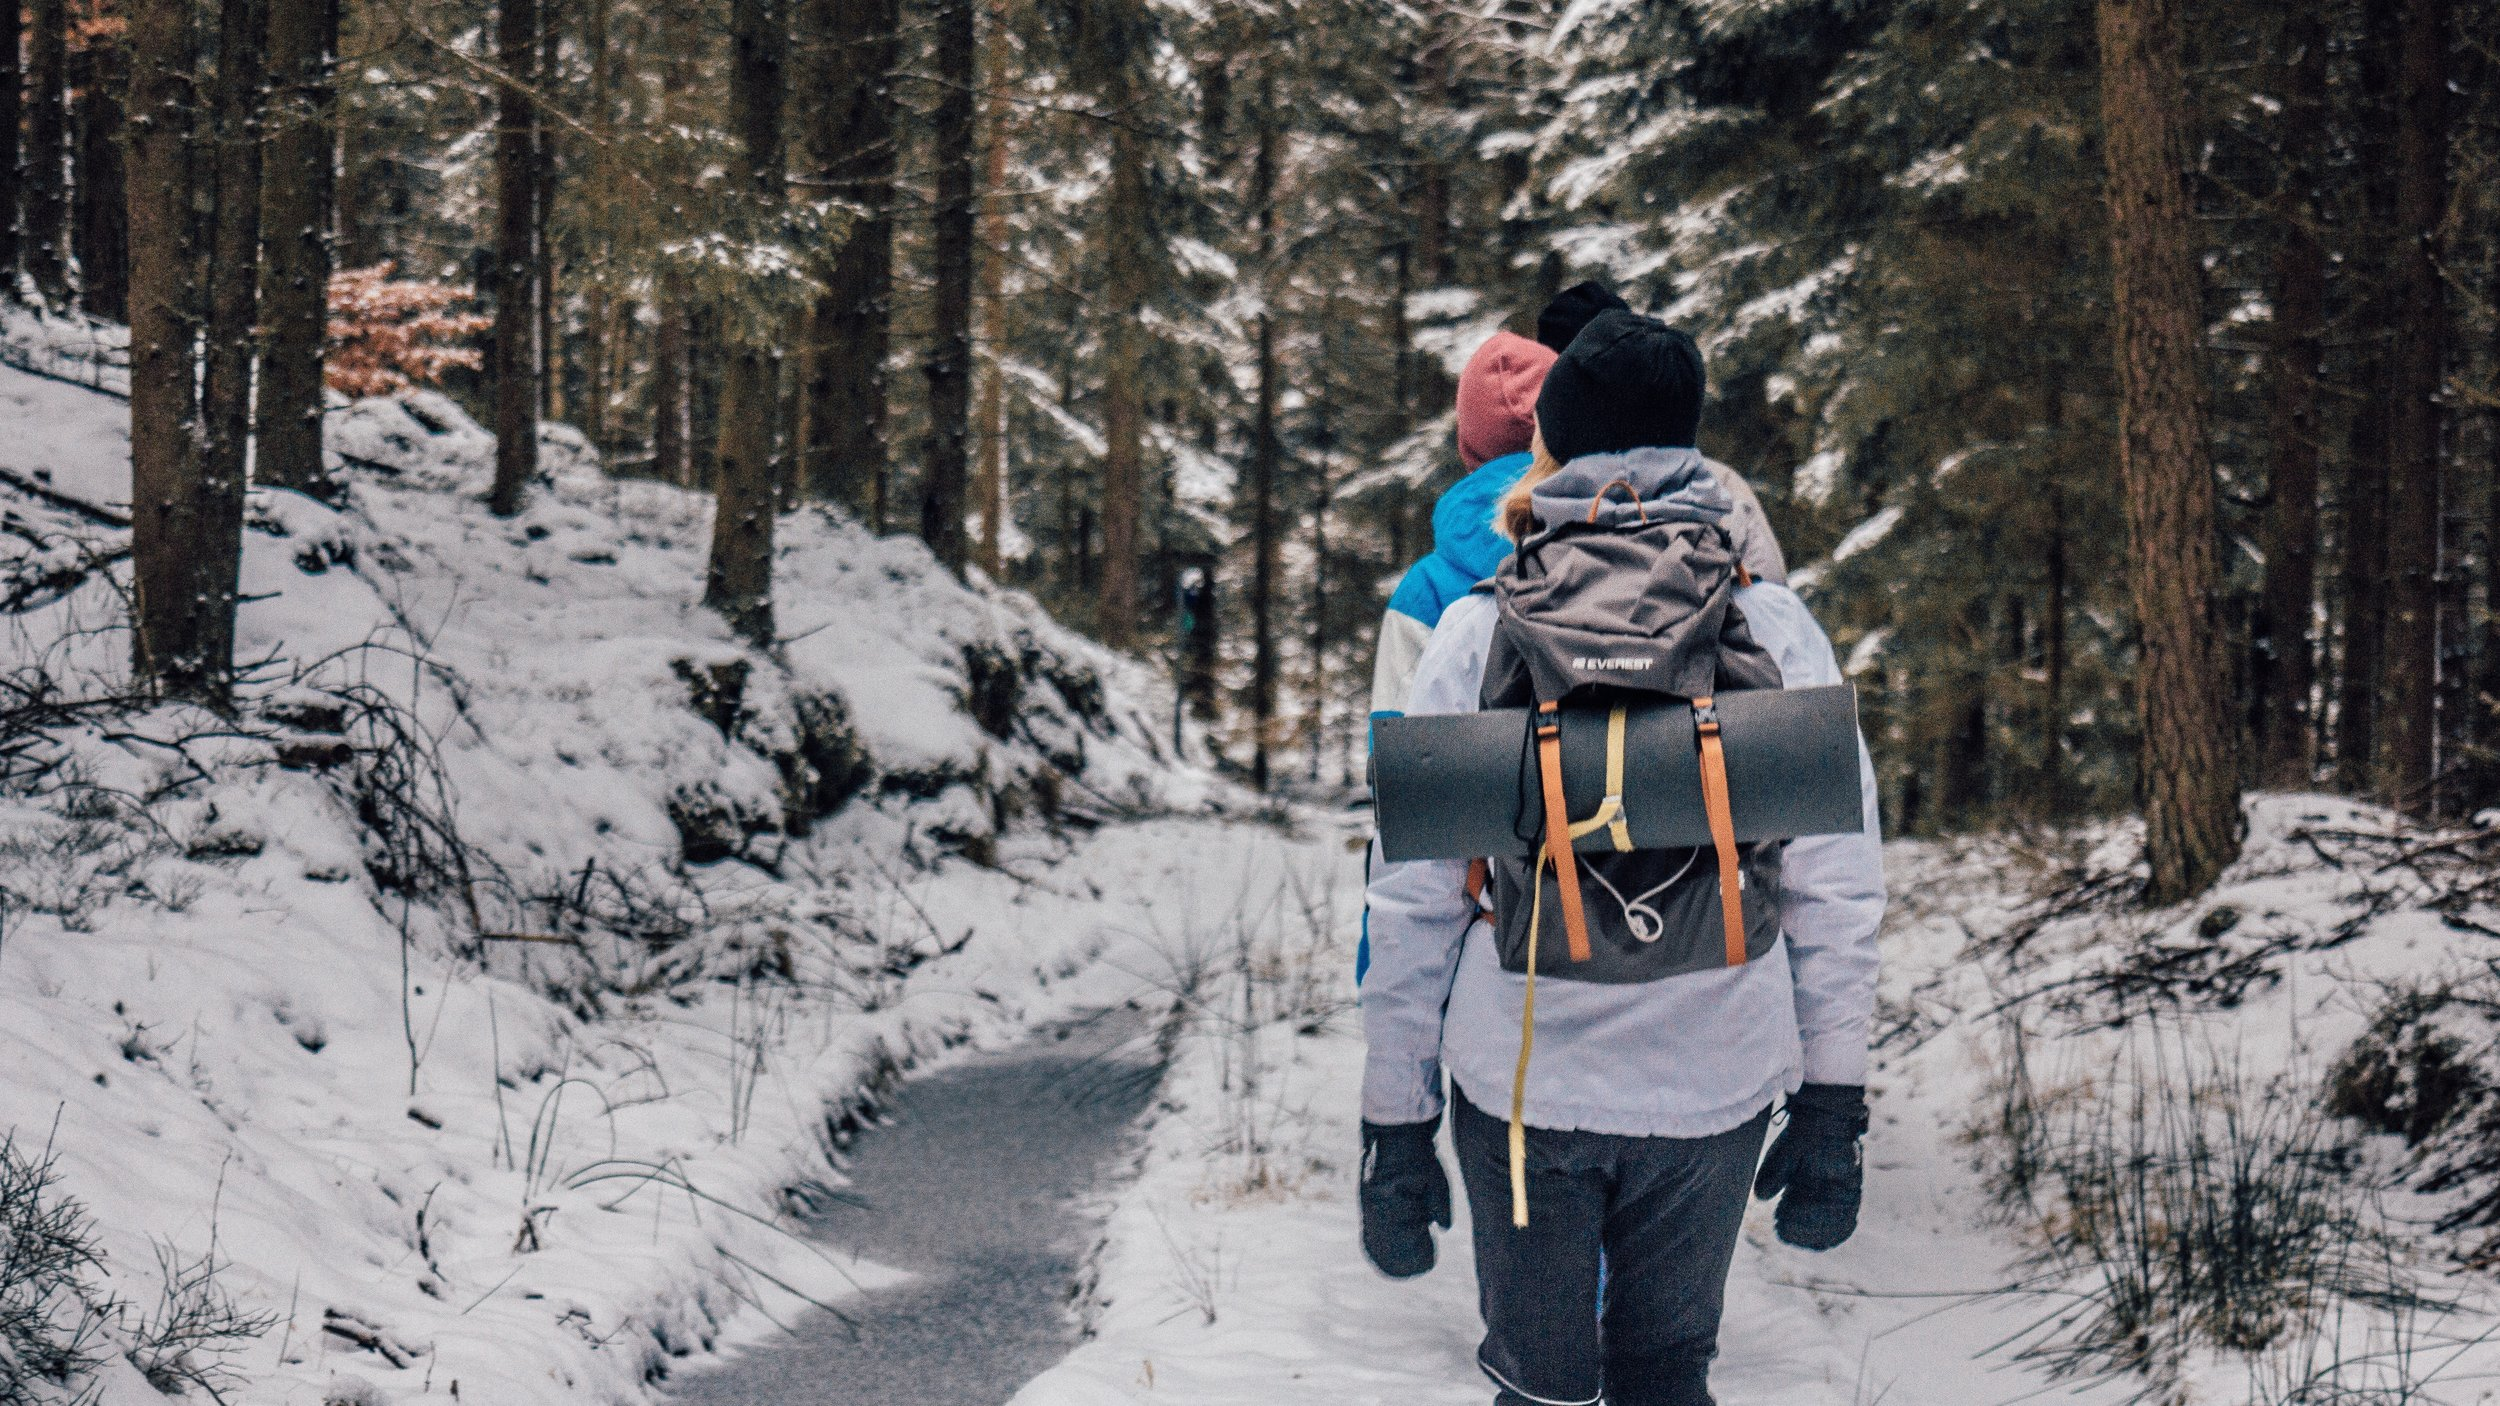 group of people hiking in the snow during winter near a stream